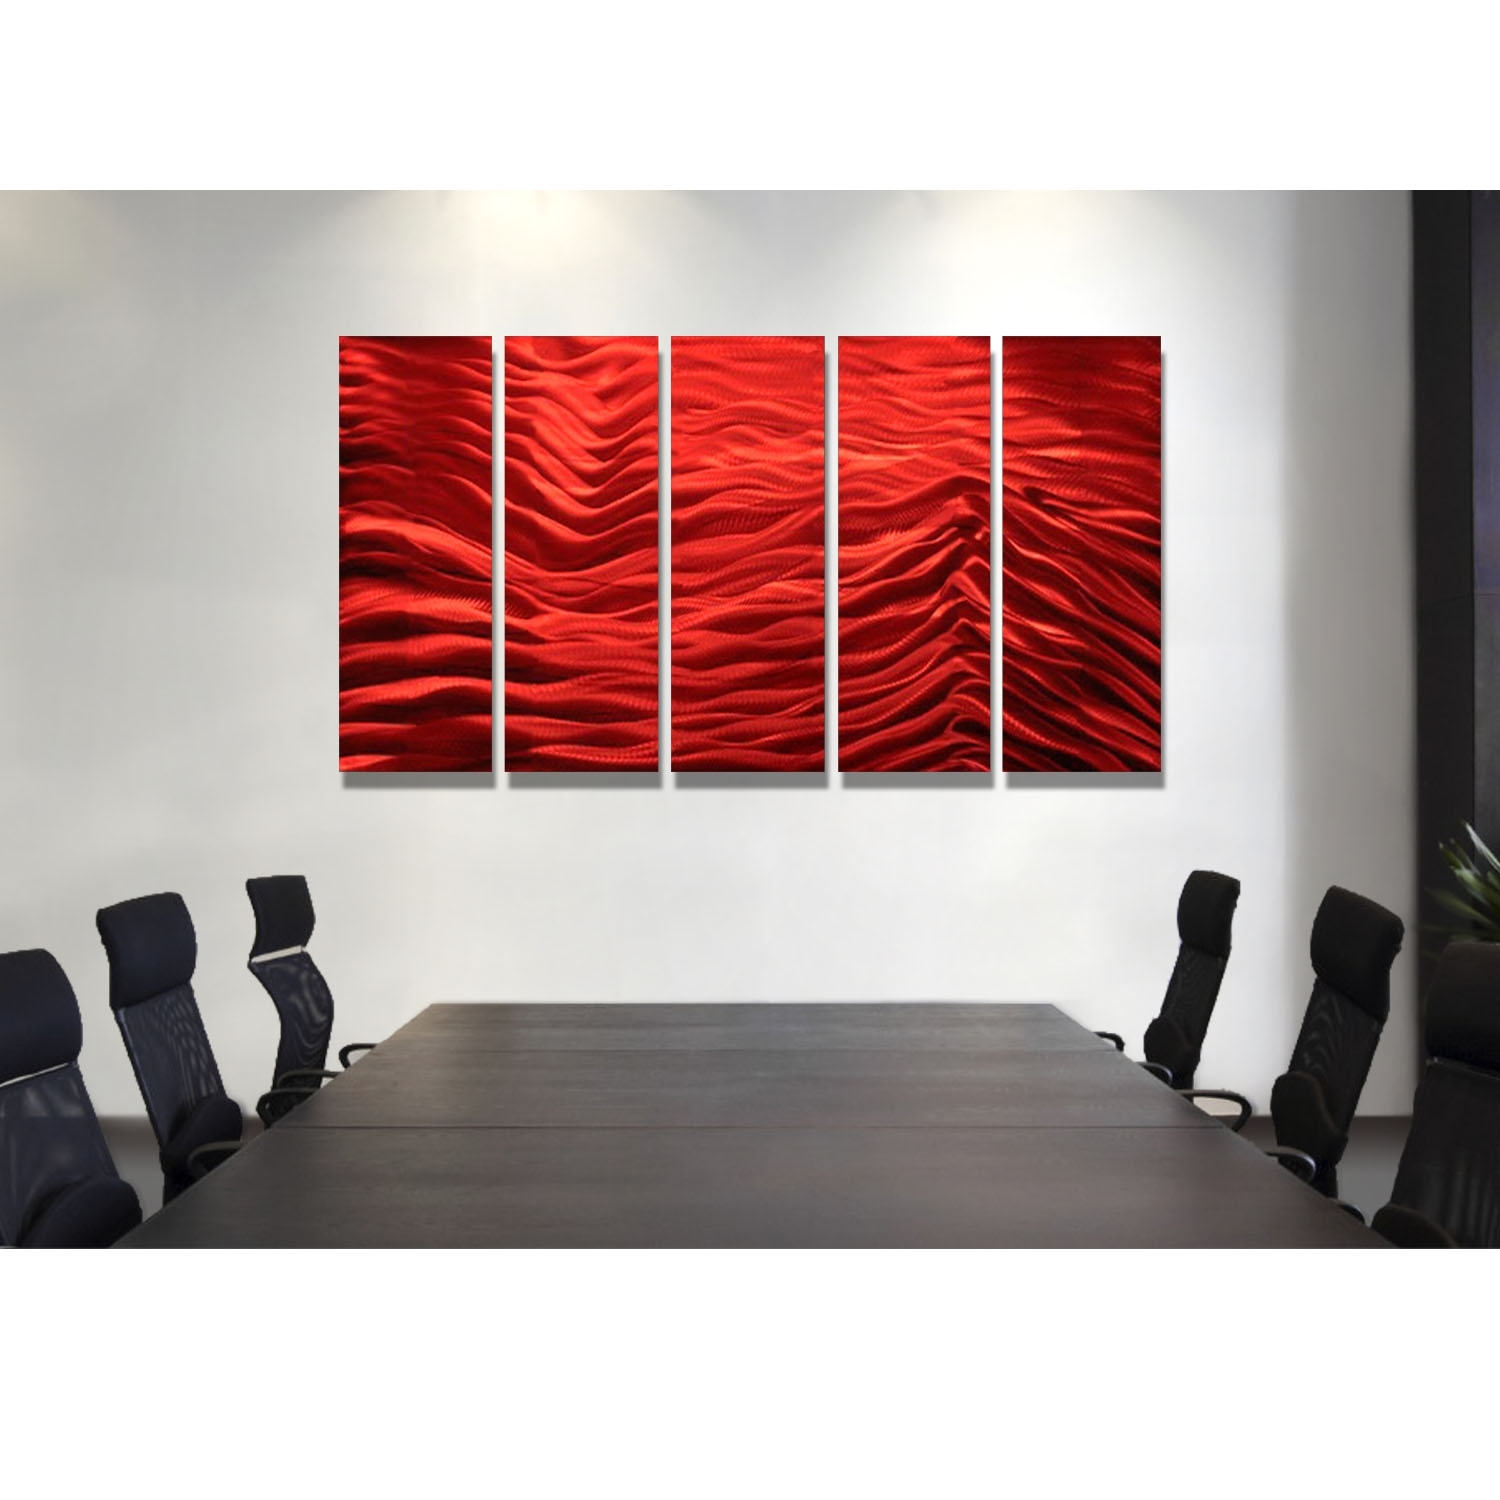 Red Inertia – Red Metal Wall Art – 5 Panel Wall Décorjon Allen With Current Red Wall Art (View 6 of 15)